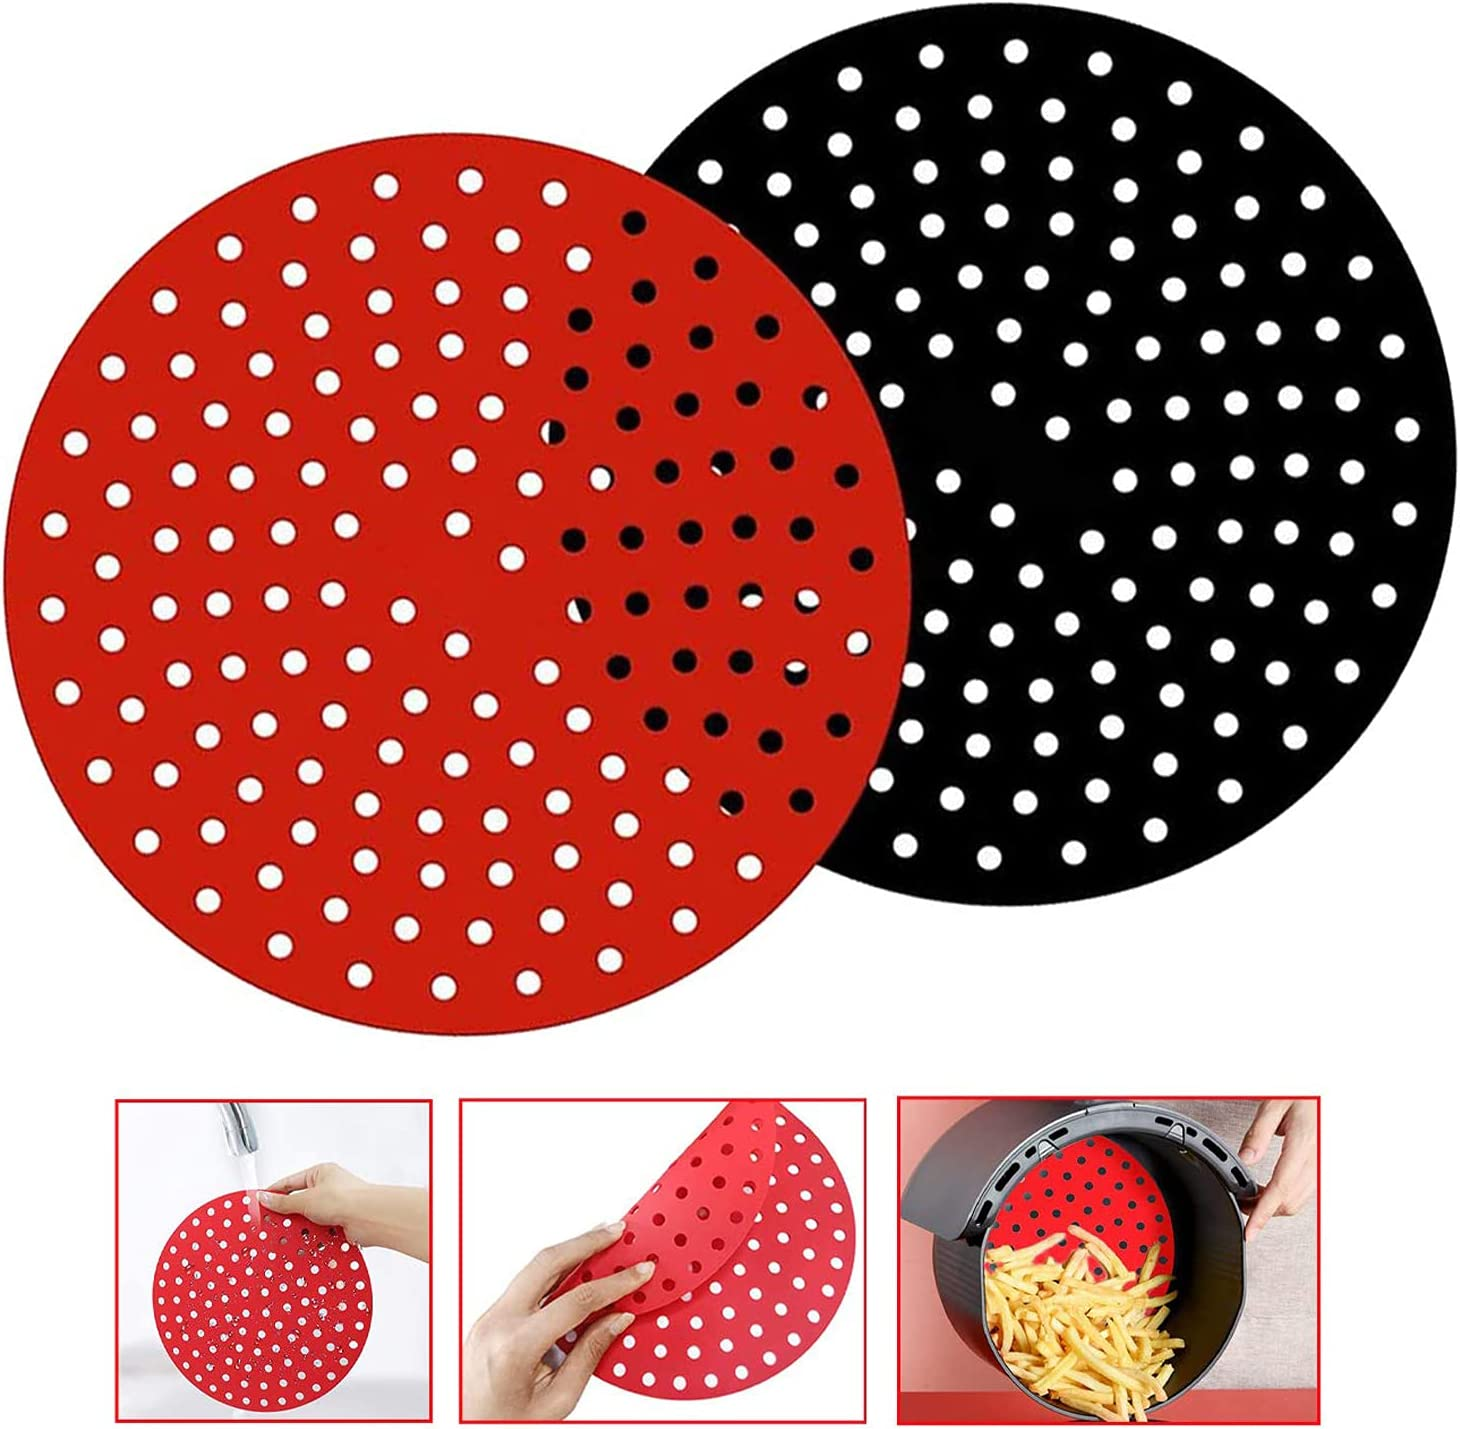 Reusable Air Fryer Liners, BECILES 8 Inches Round Non-Stick Silicone Air Fryer Mats,Air Fryer Basket, Mats Air Fryer Accessories For 5.6 QT & Larger AirFryers,BPA Free (8inch)